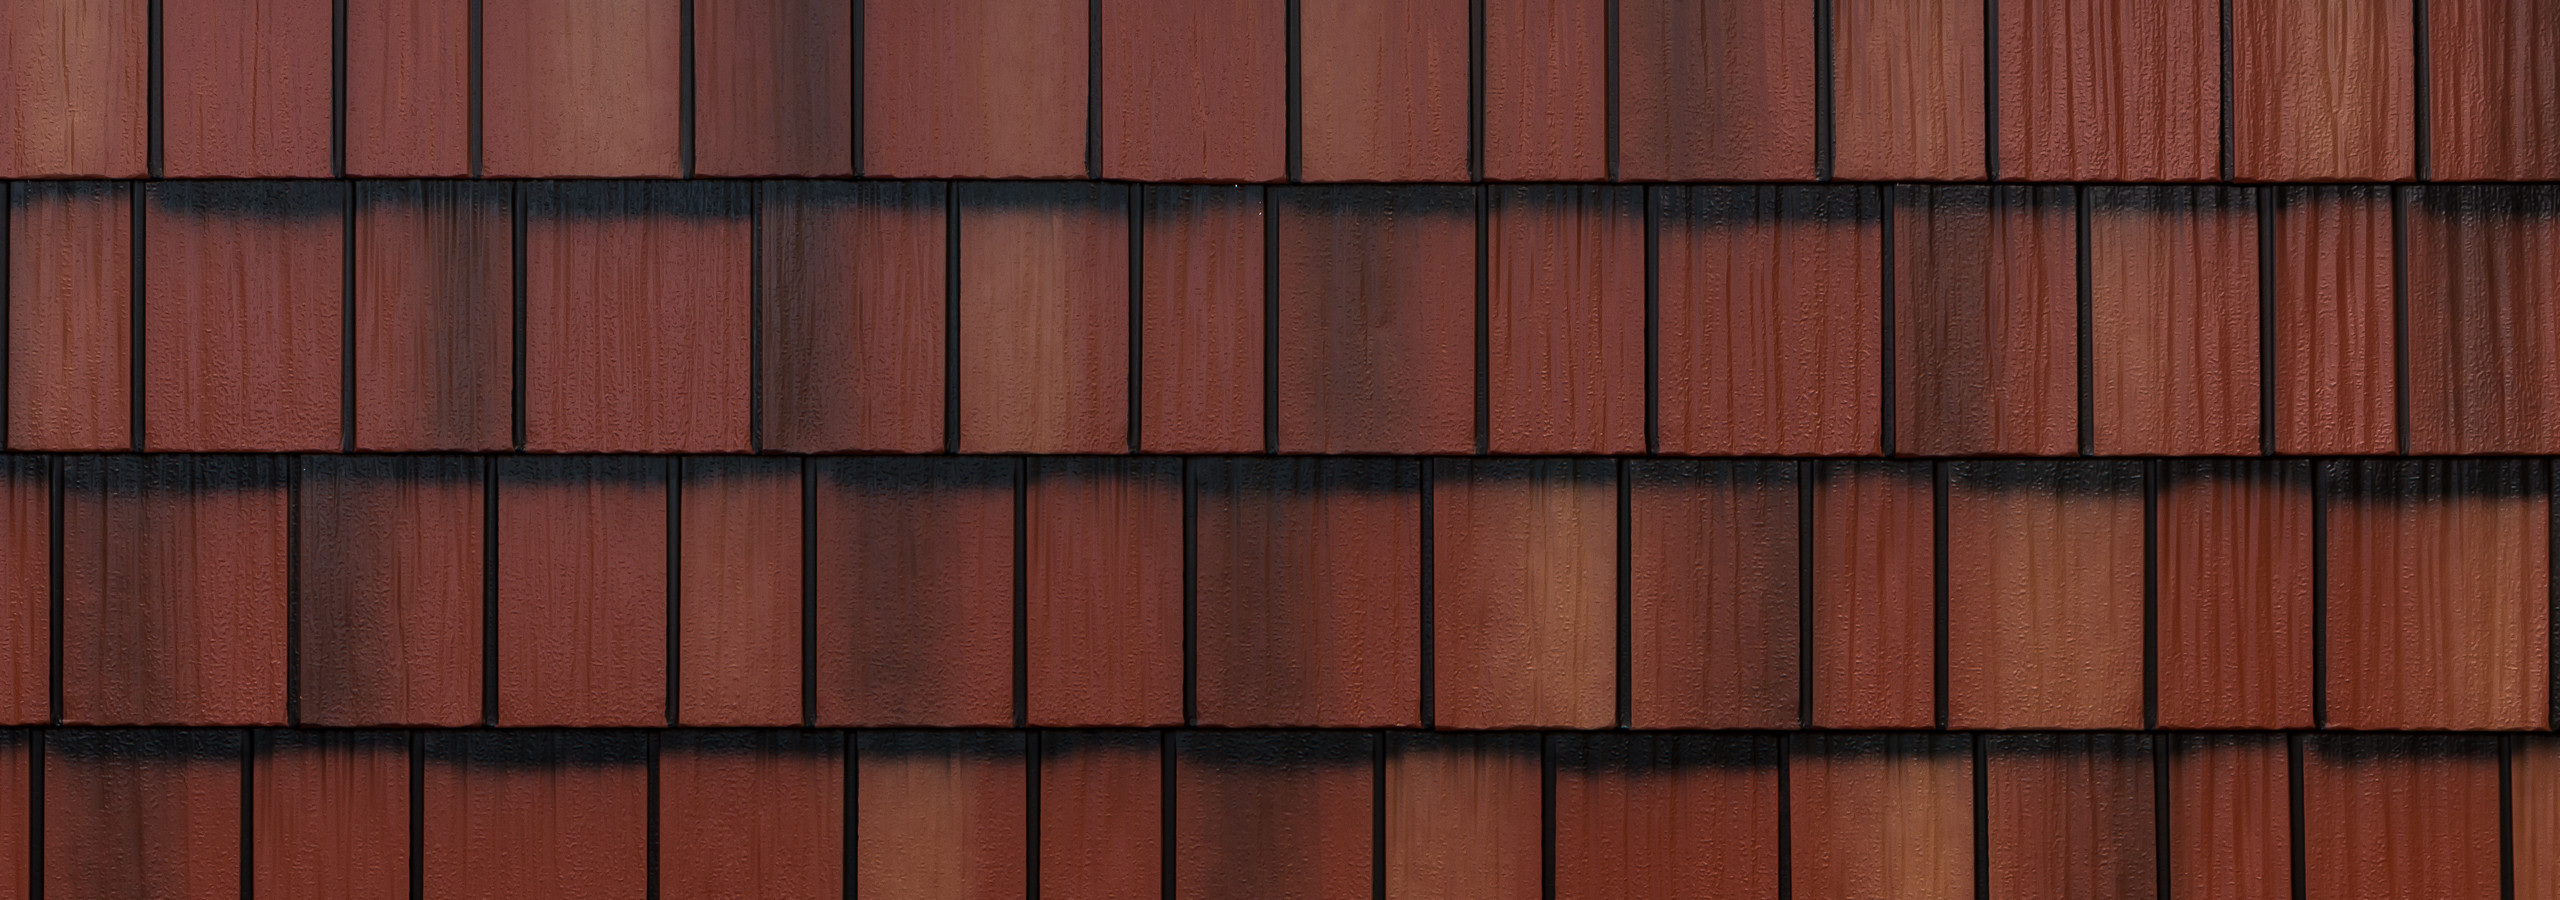 Classic red steel shake roofing